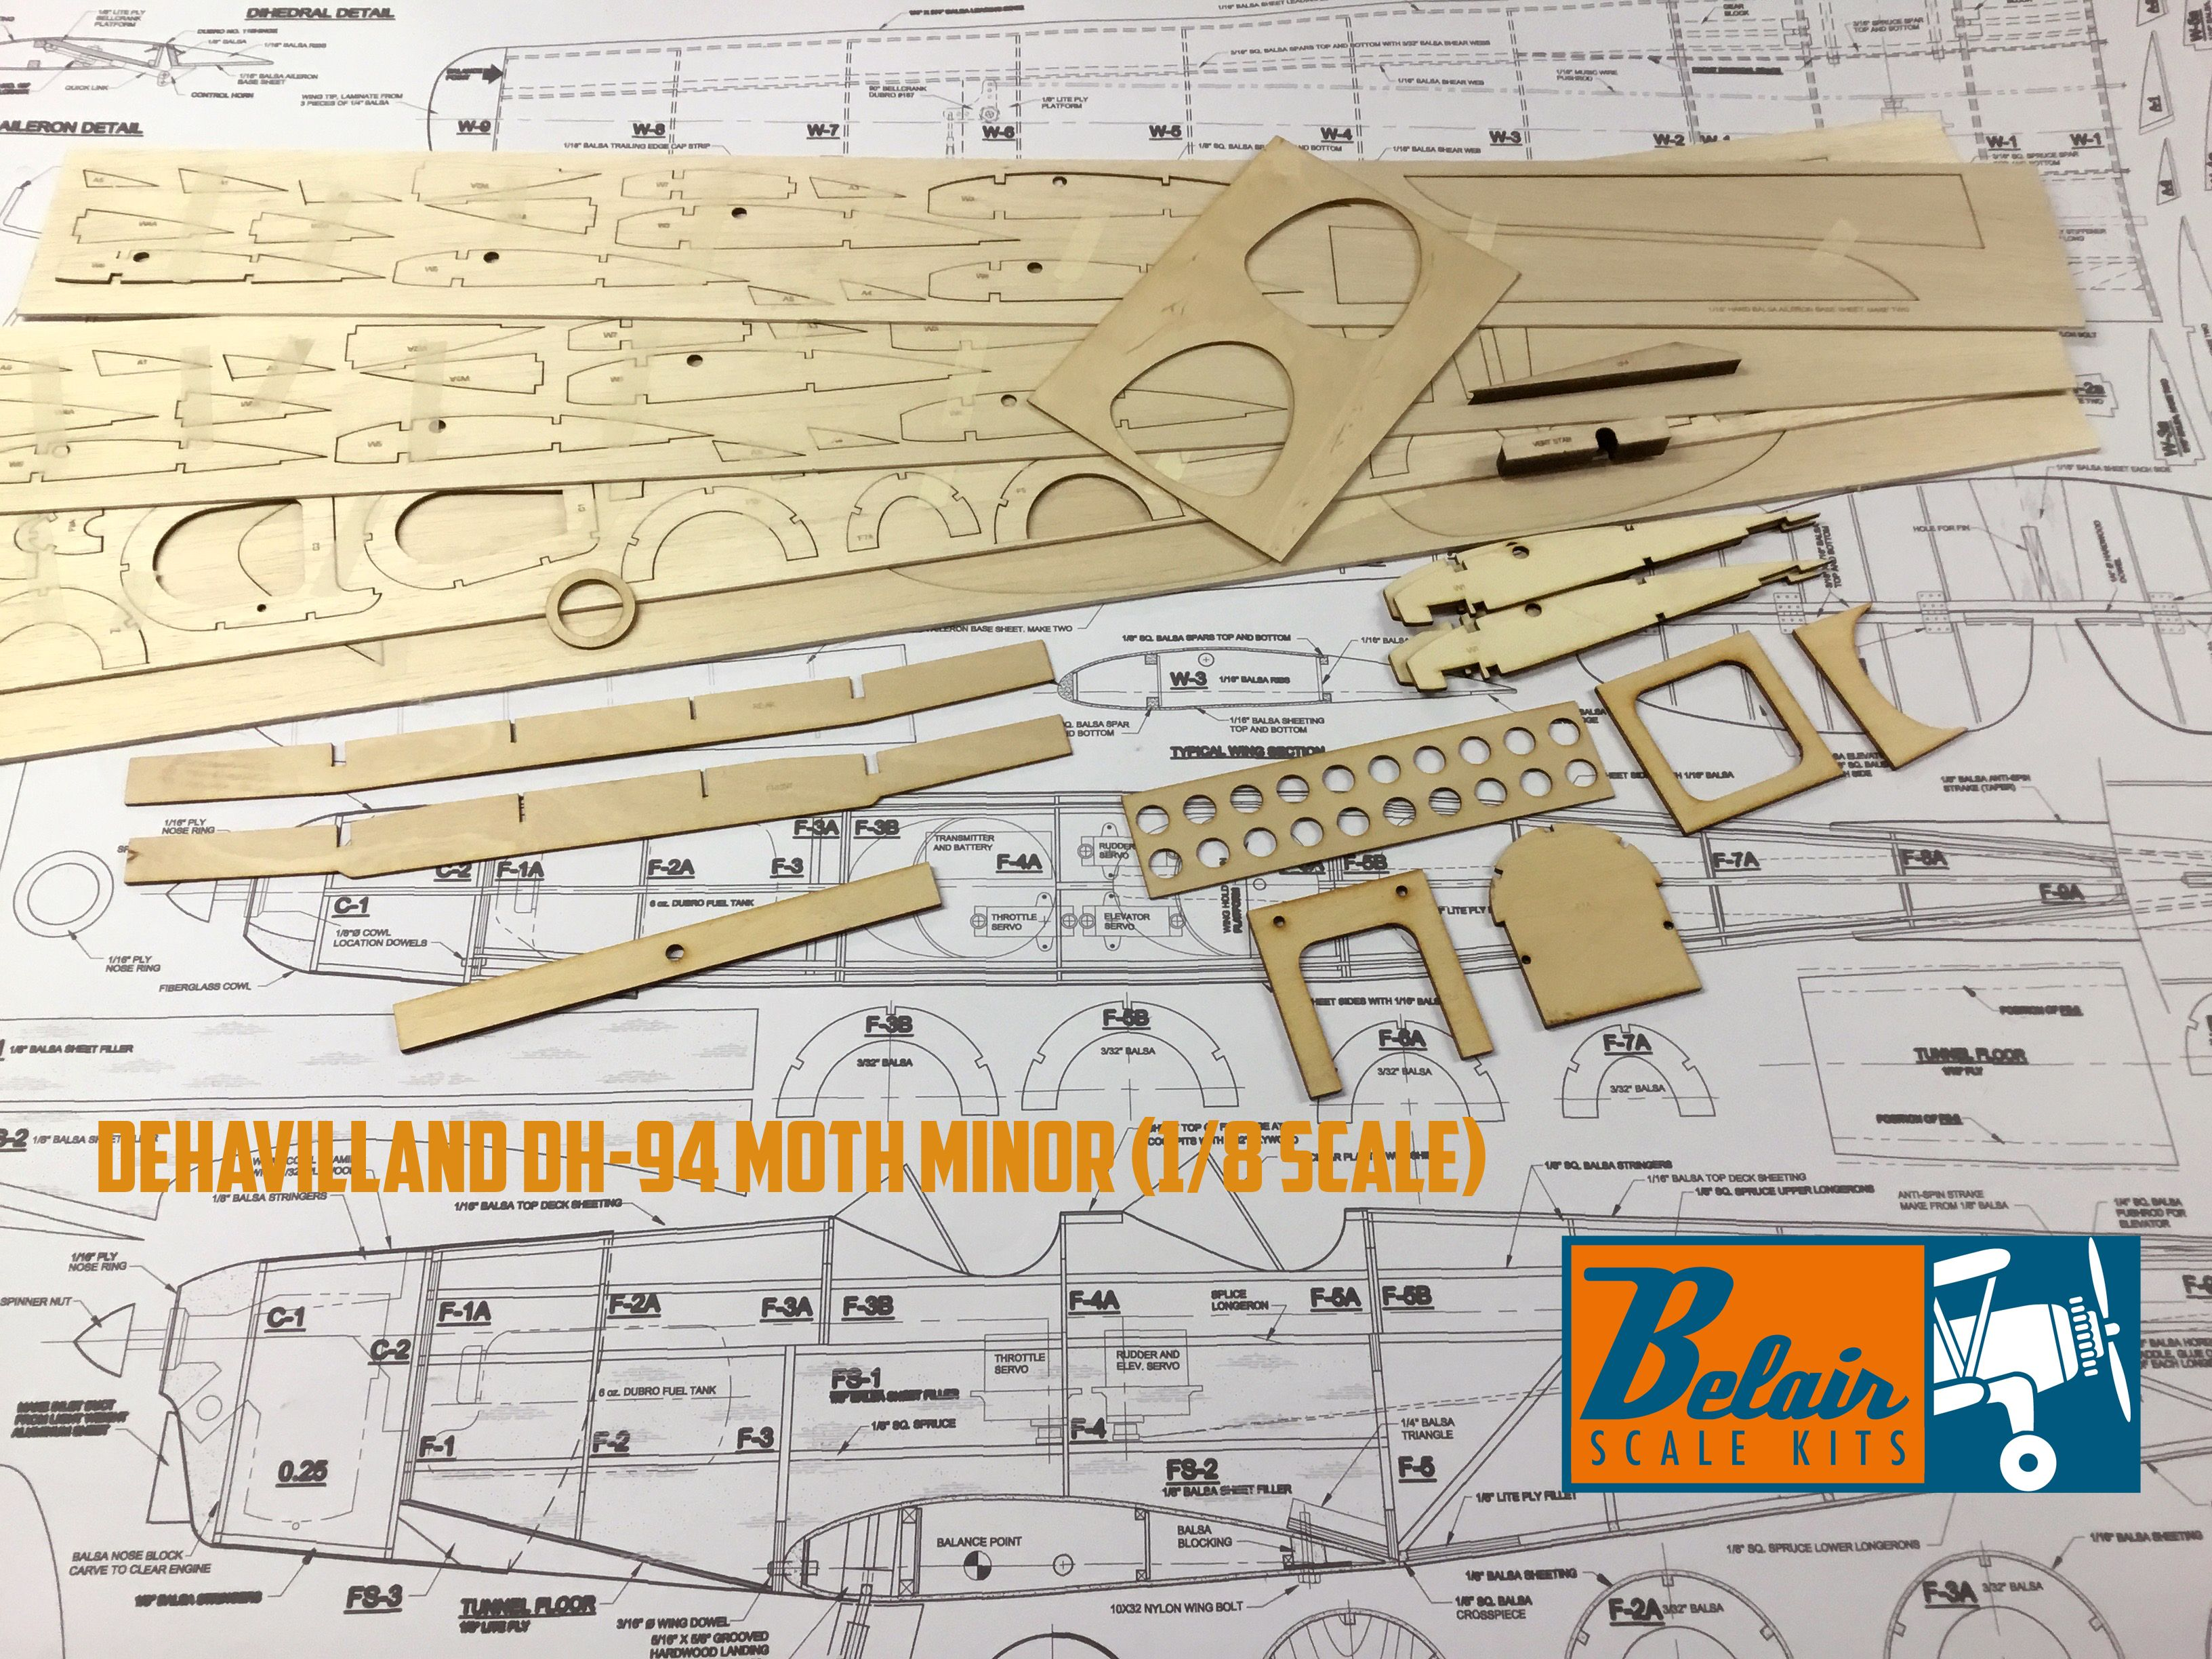 DeHavilland DH-94 Moth Minor (1/8 Scale) Parts and Plan set